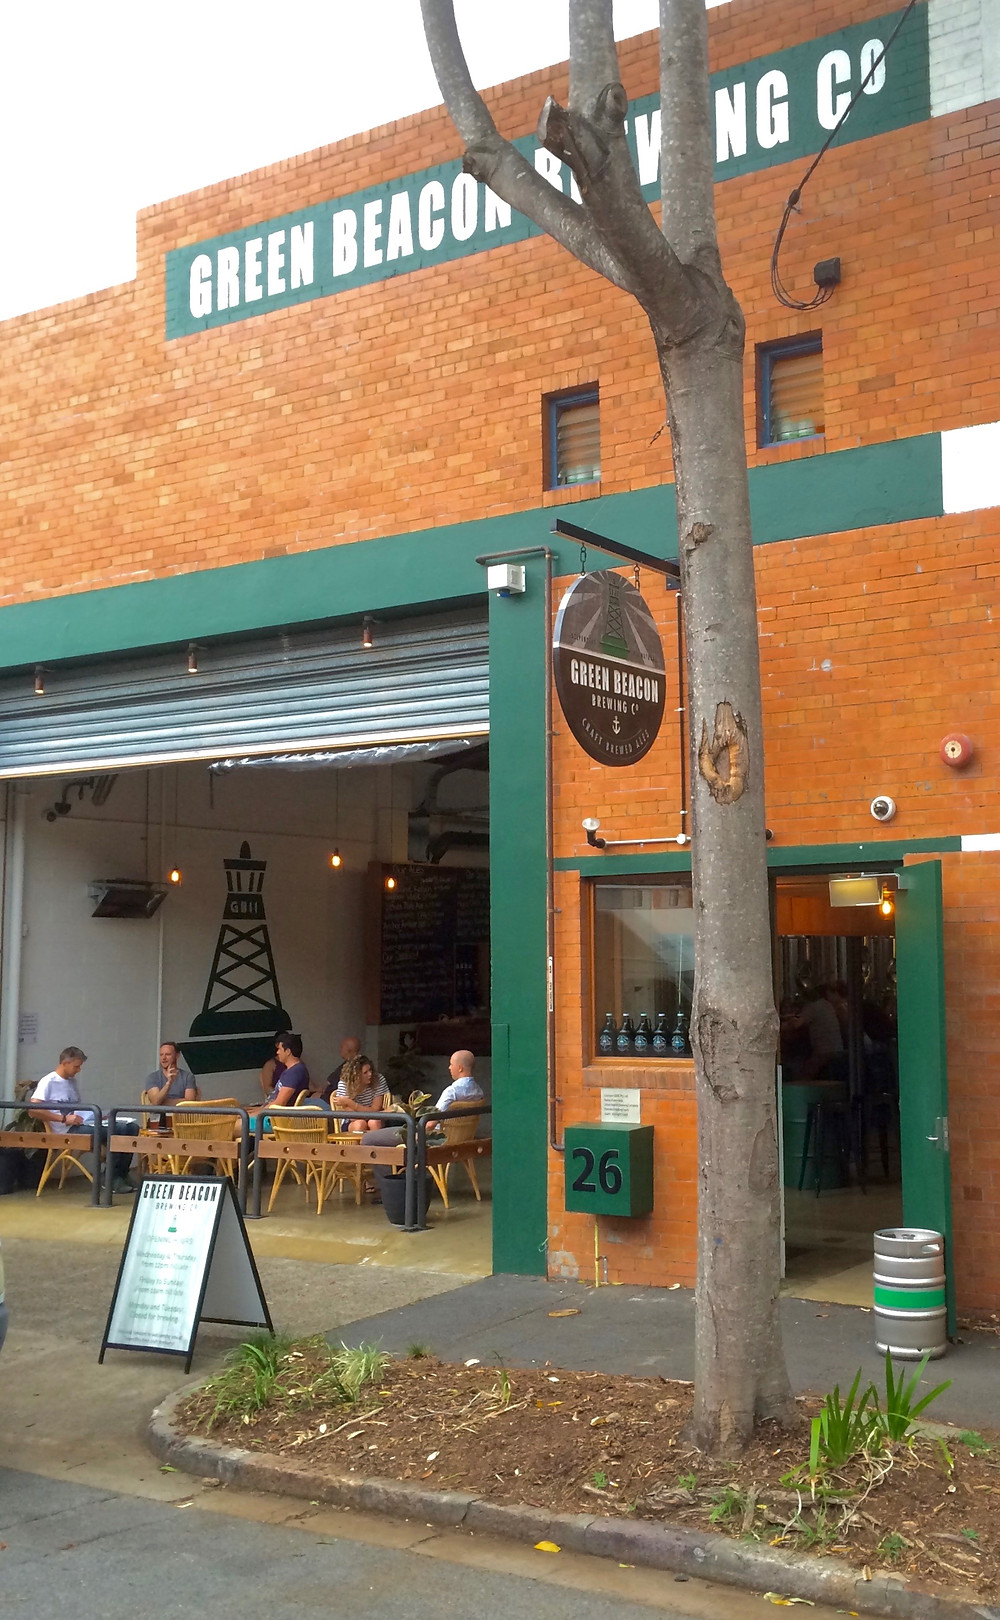 The Green Beacon Brewery